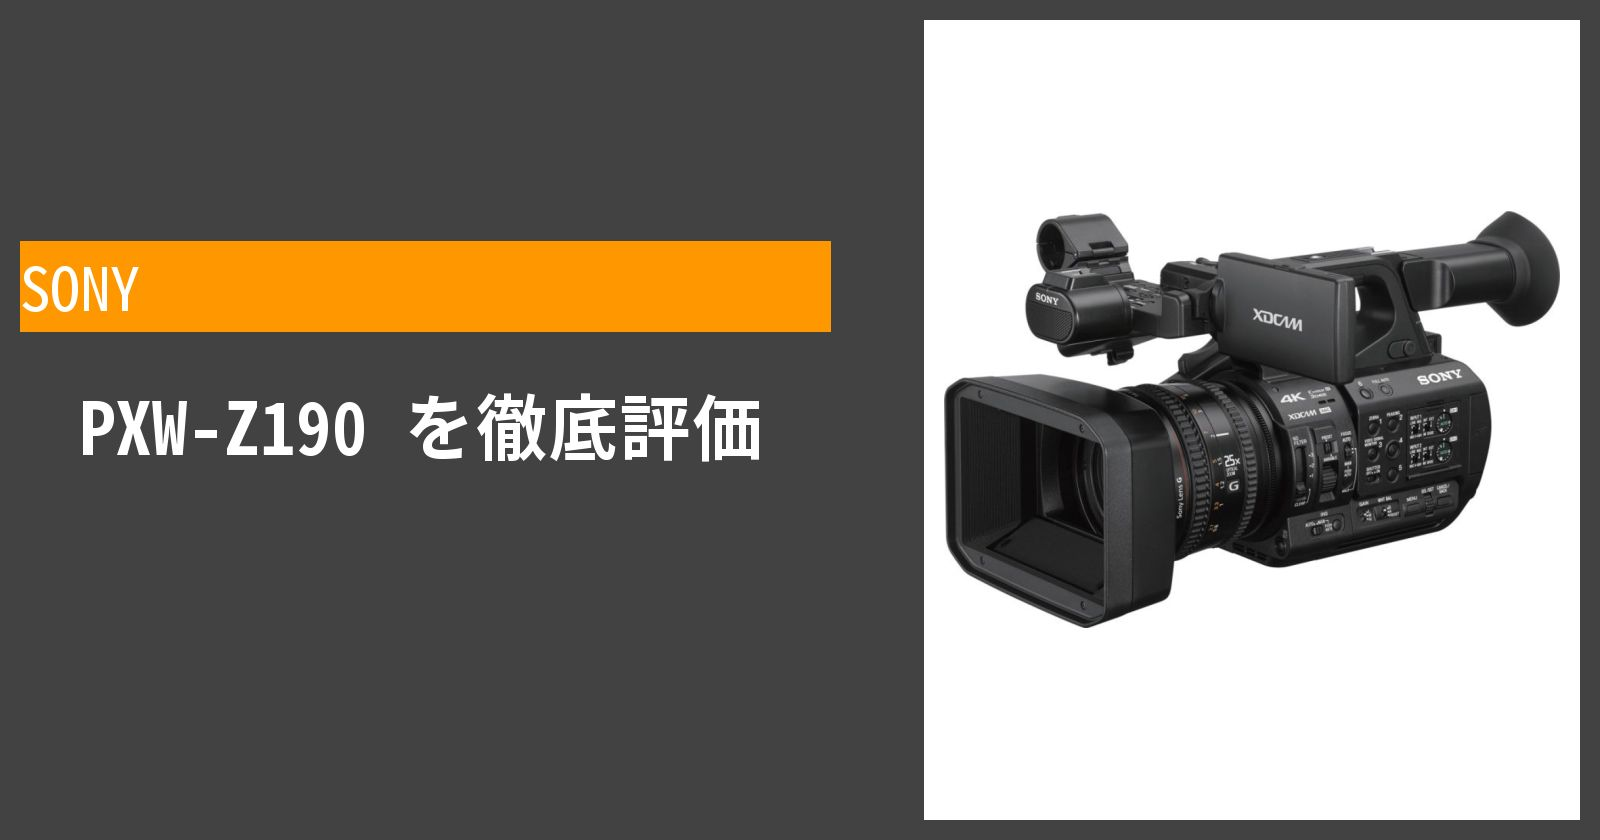 PXW-Z190を徹底評価